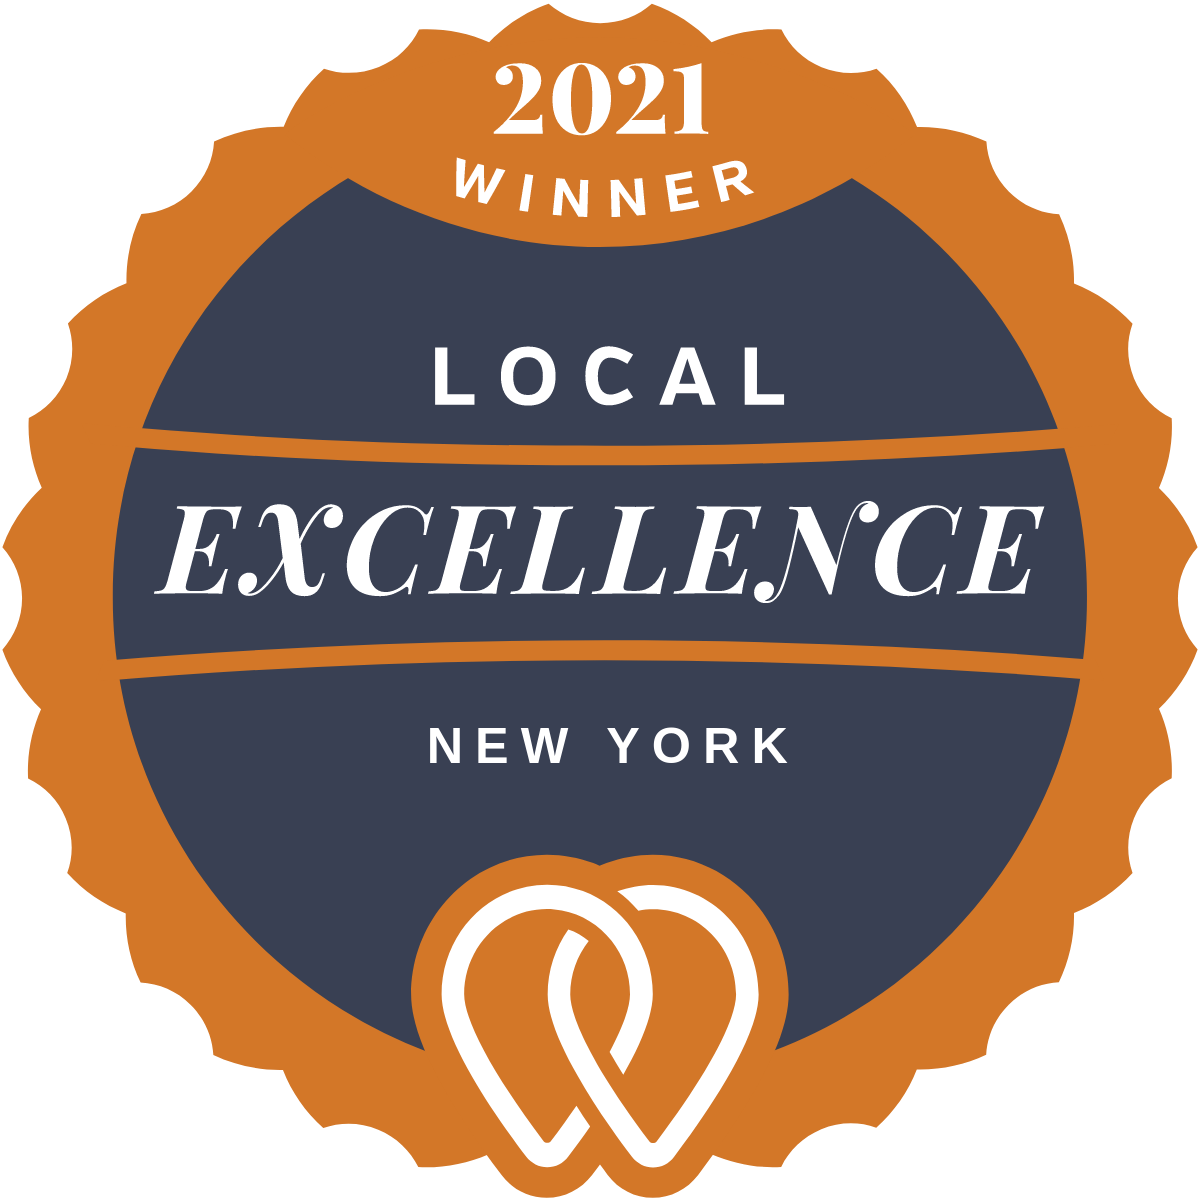 2021 Local Excellence Winner in New York, NY